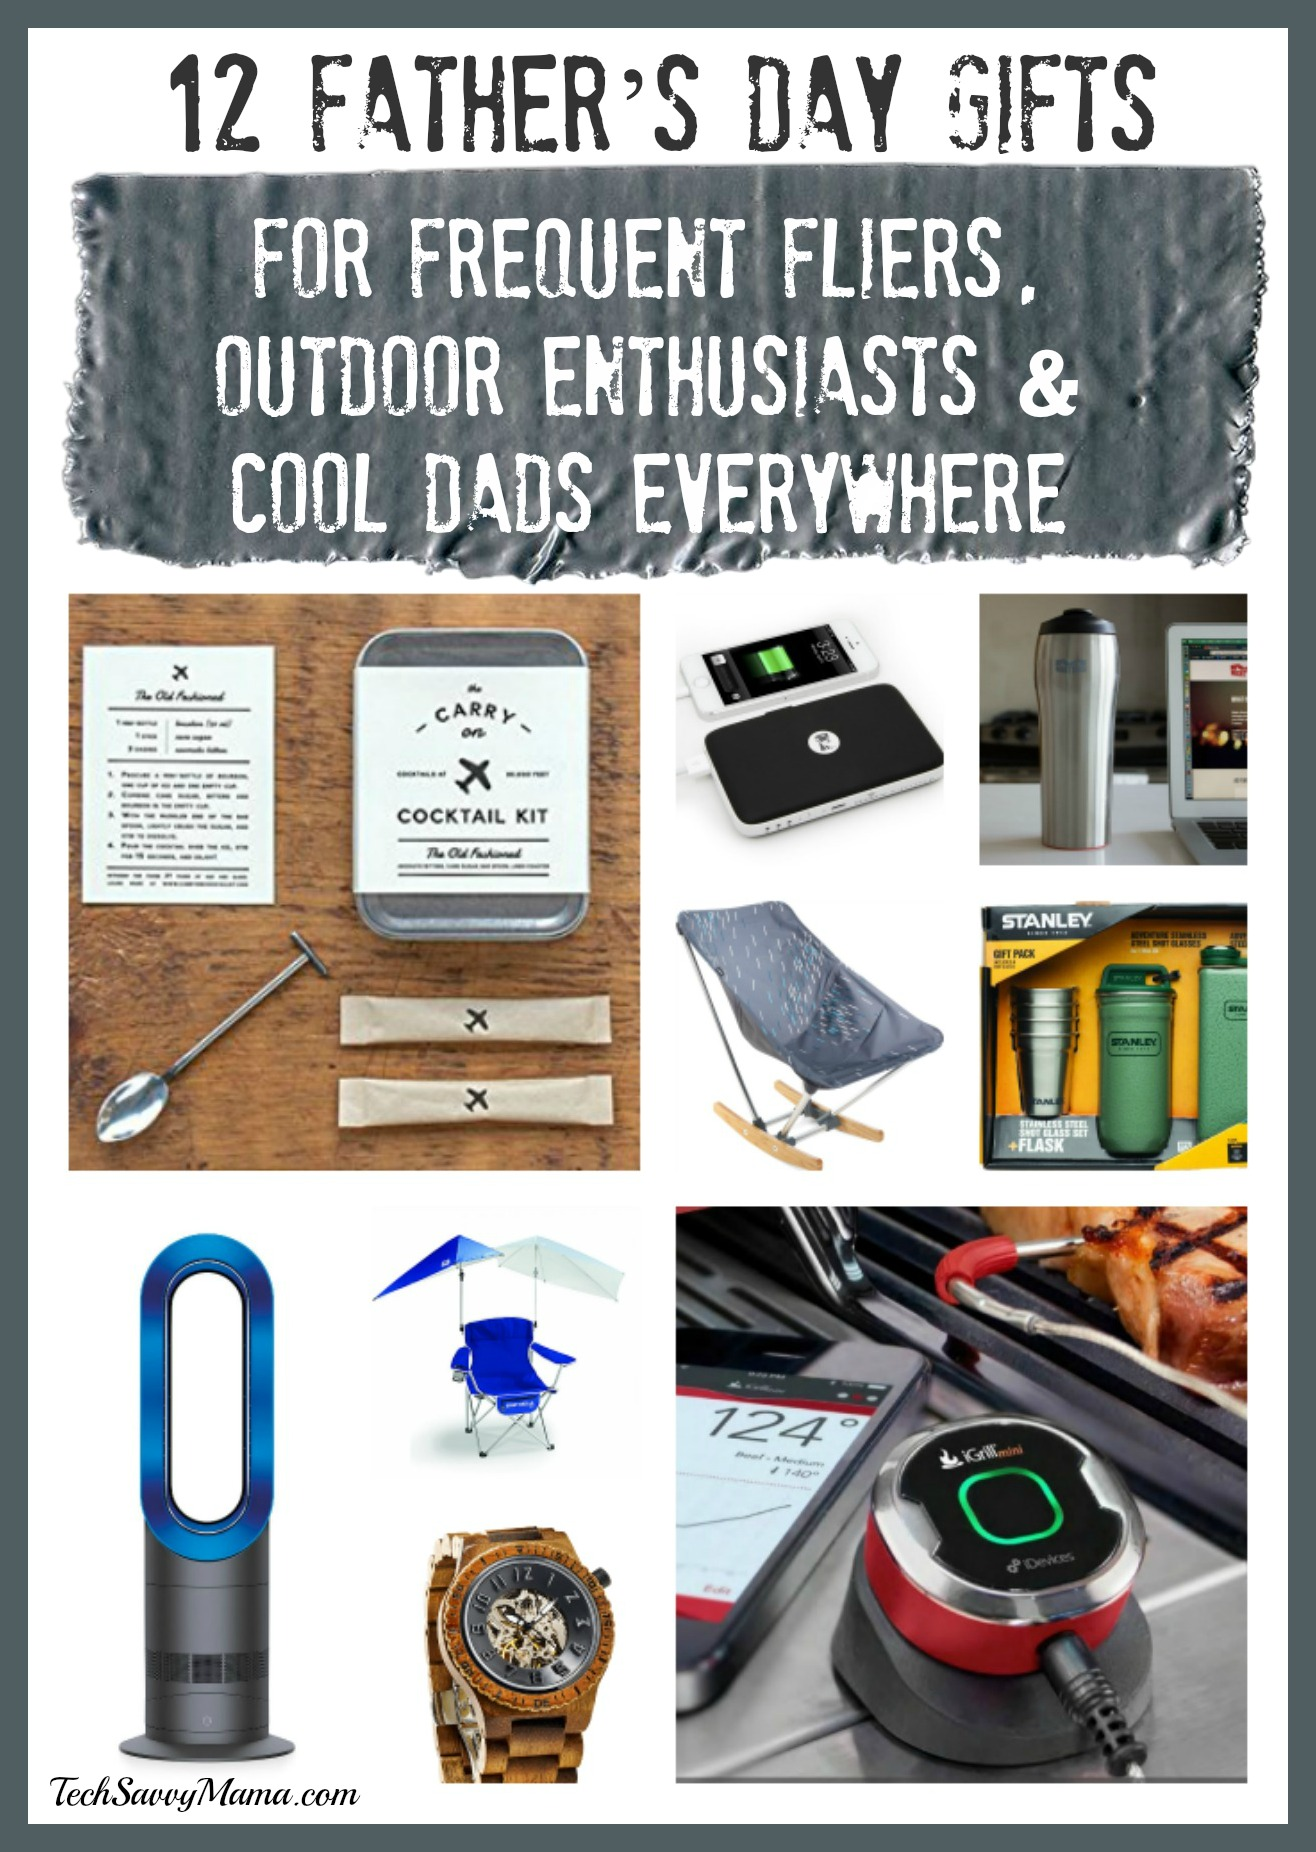 Cool Technology Gifts 2015 12 Fathers Day Gifts For Frequent Fliers Outdoor